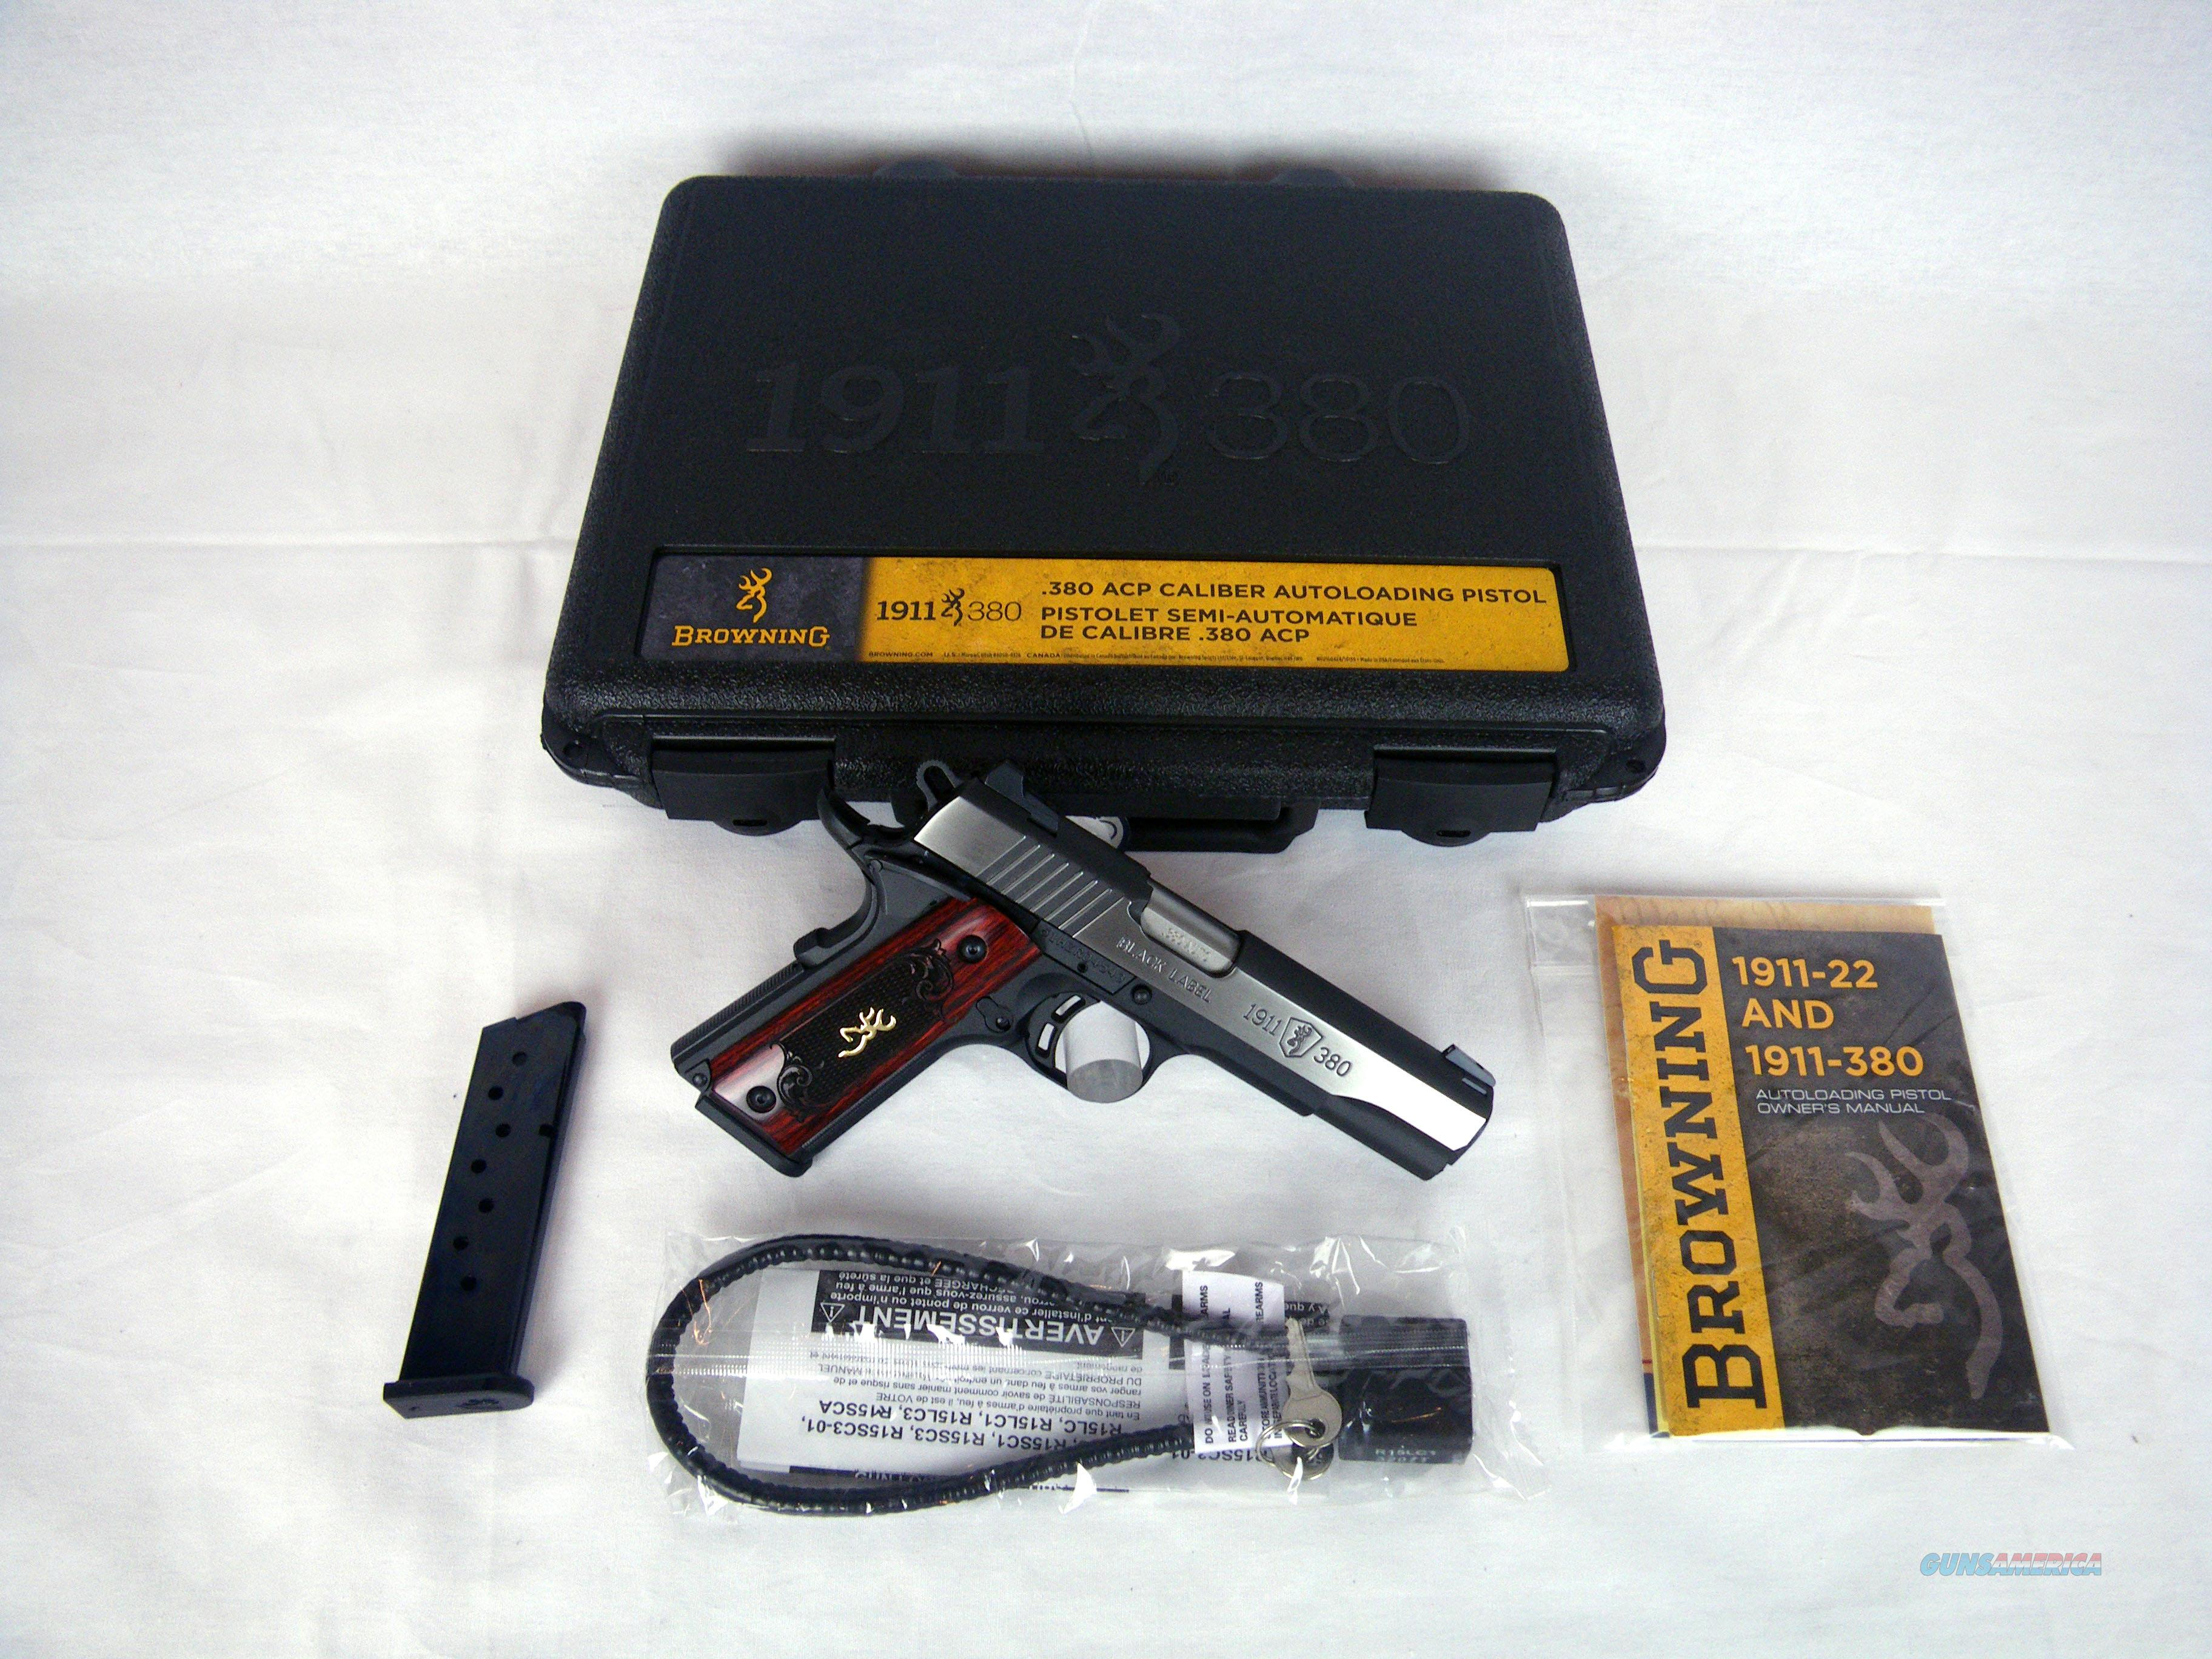 """Browning 1911-380 Medallion Pro 380ACP 4.25"""" NEW #051914492  Guns > Pistols > Browning Pistols > Other Autos"""